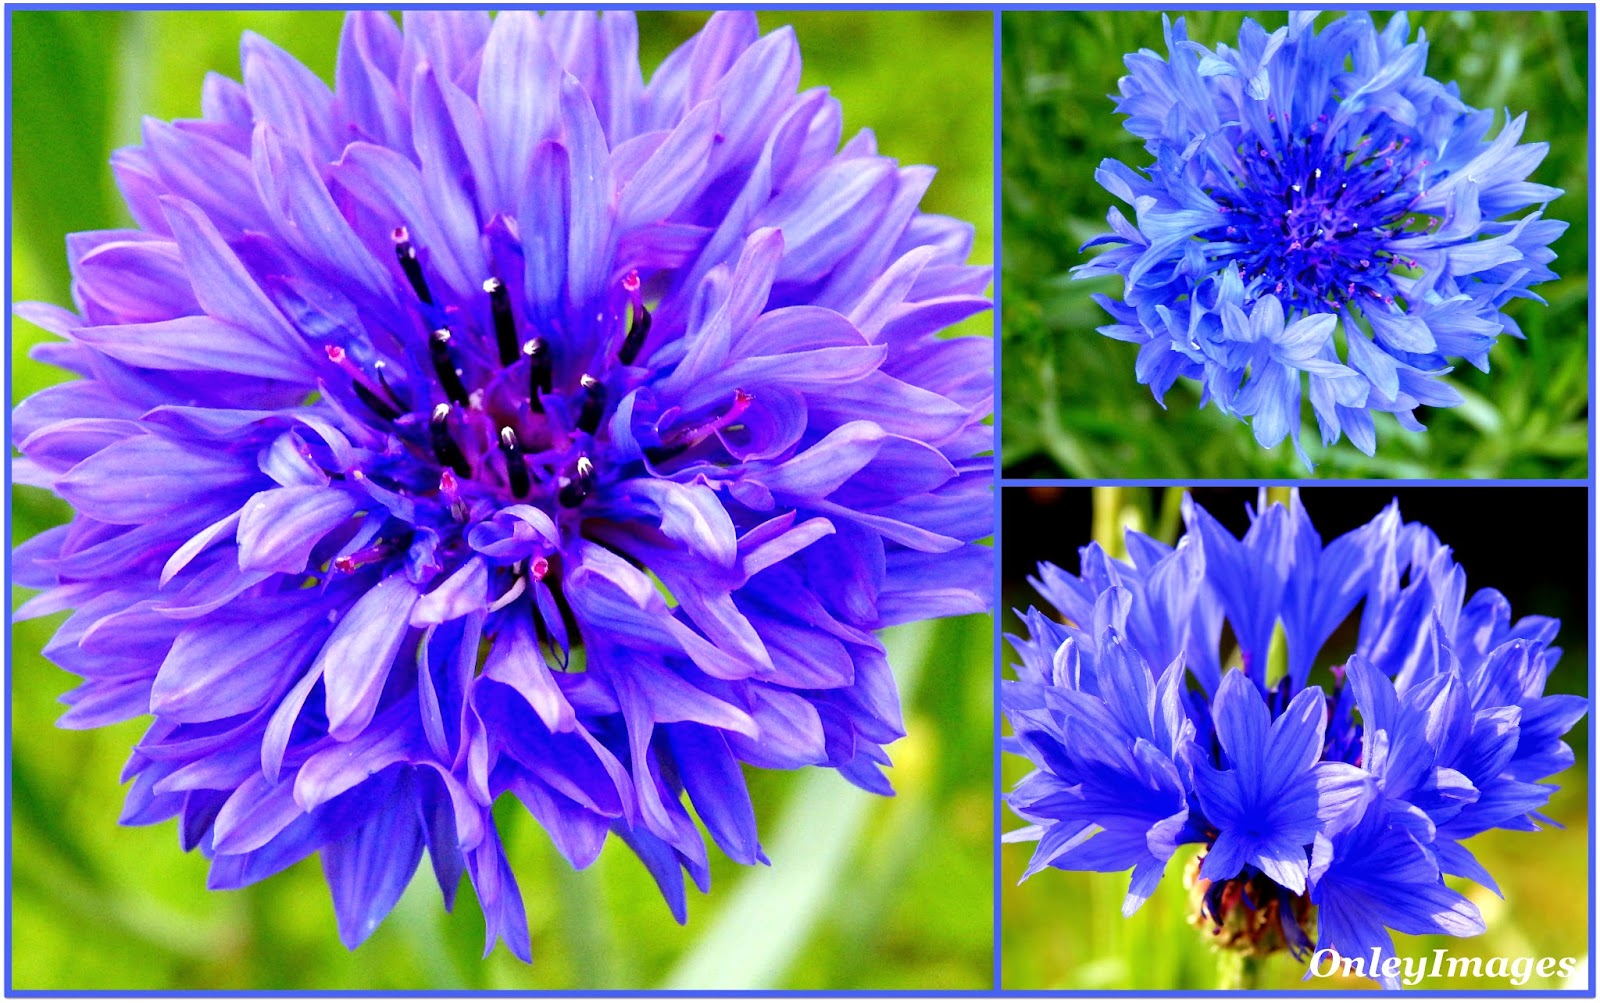 What do you know about cornflowers